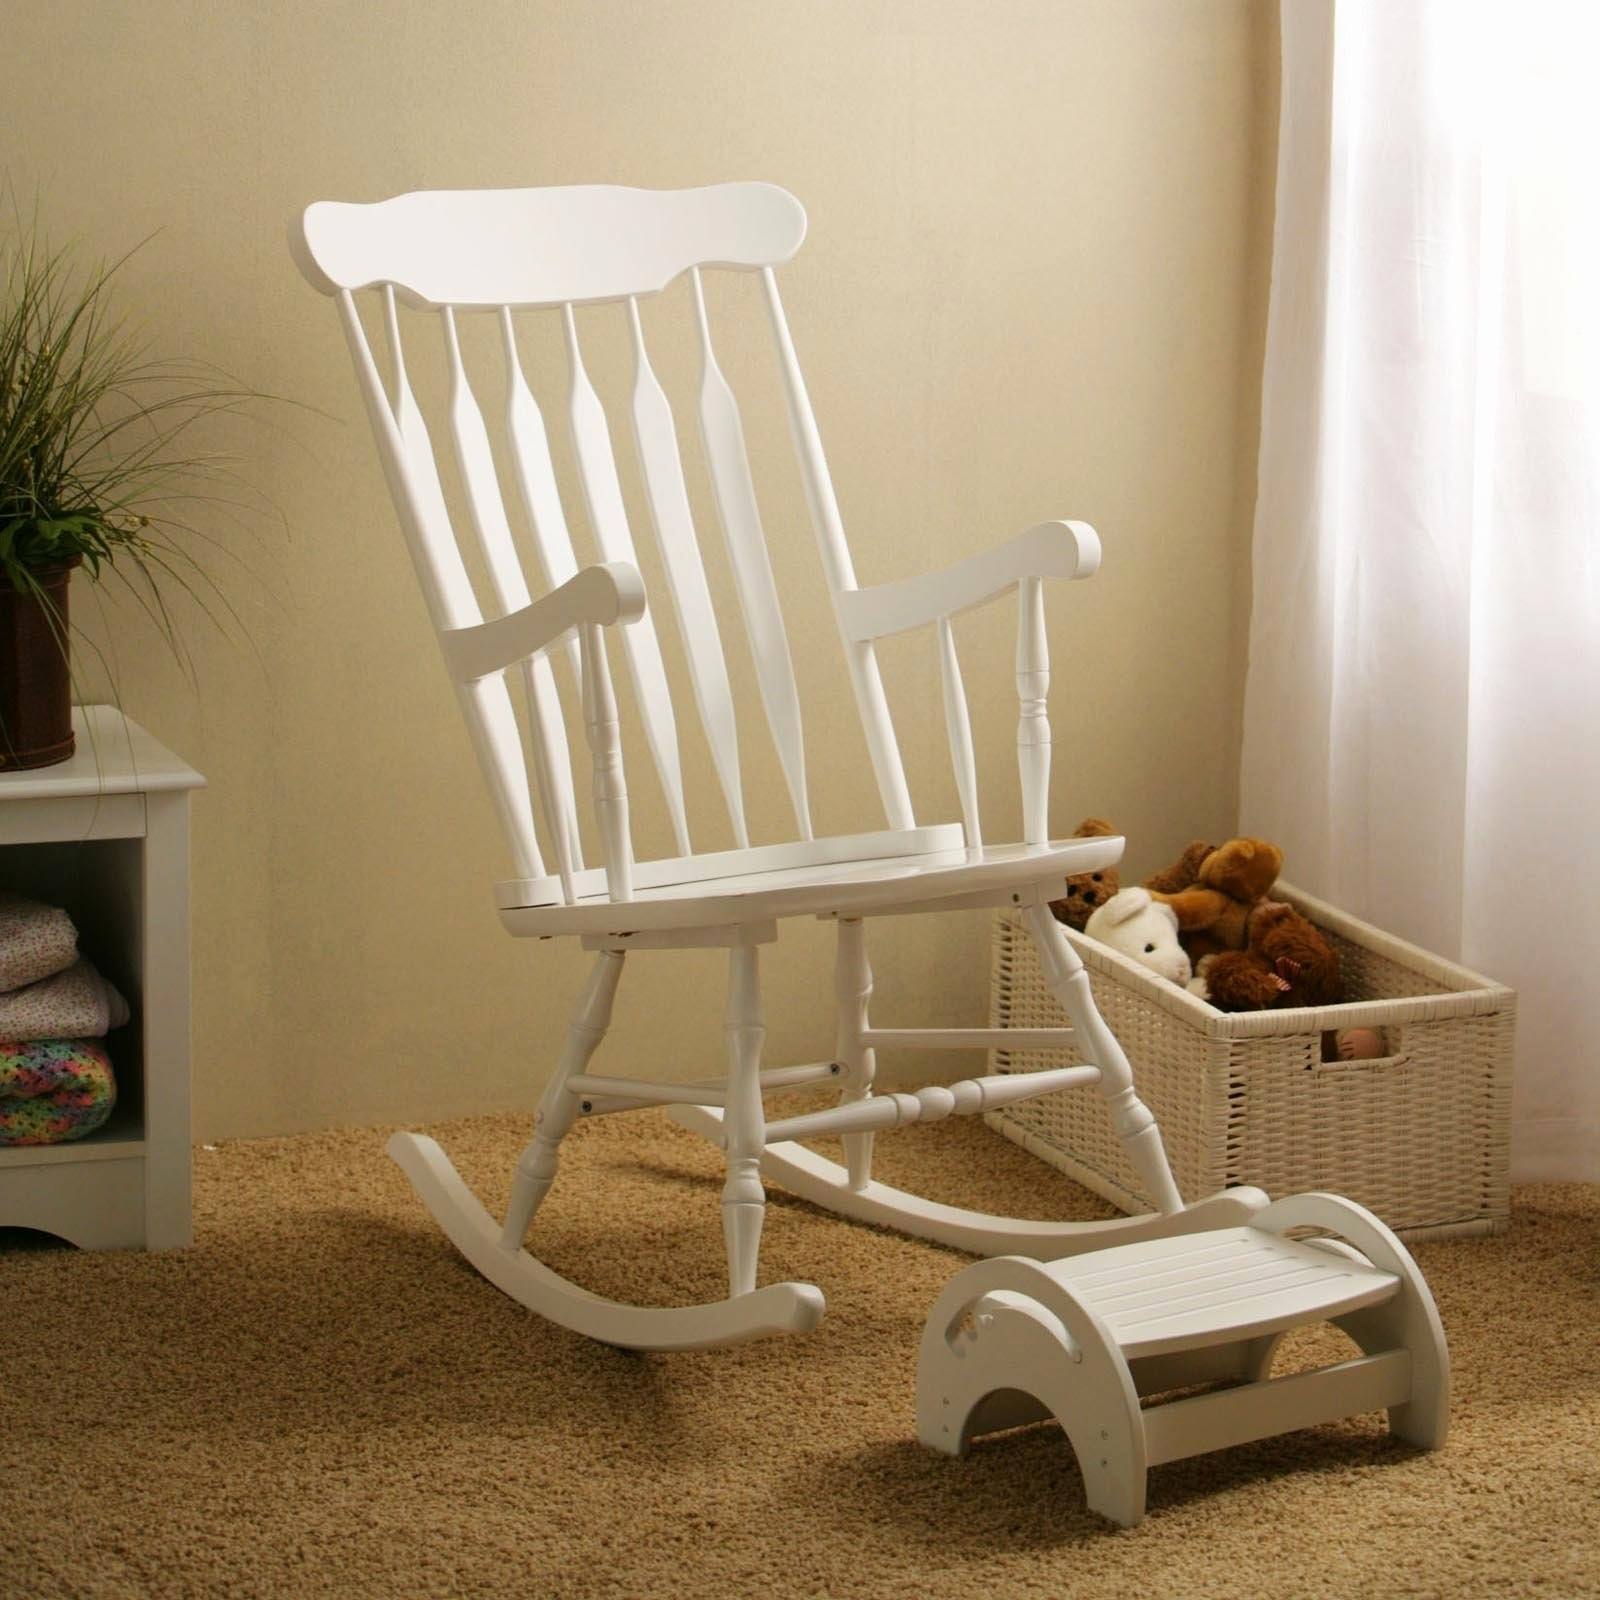 Inspiration about Luxury Wicker Rocking Chair Graphics Home Improvement Lovely Intended For White Wicker Rocking Chair For Nursery (#3 of 15)